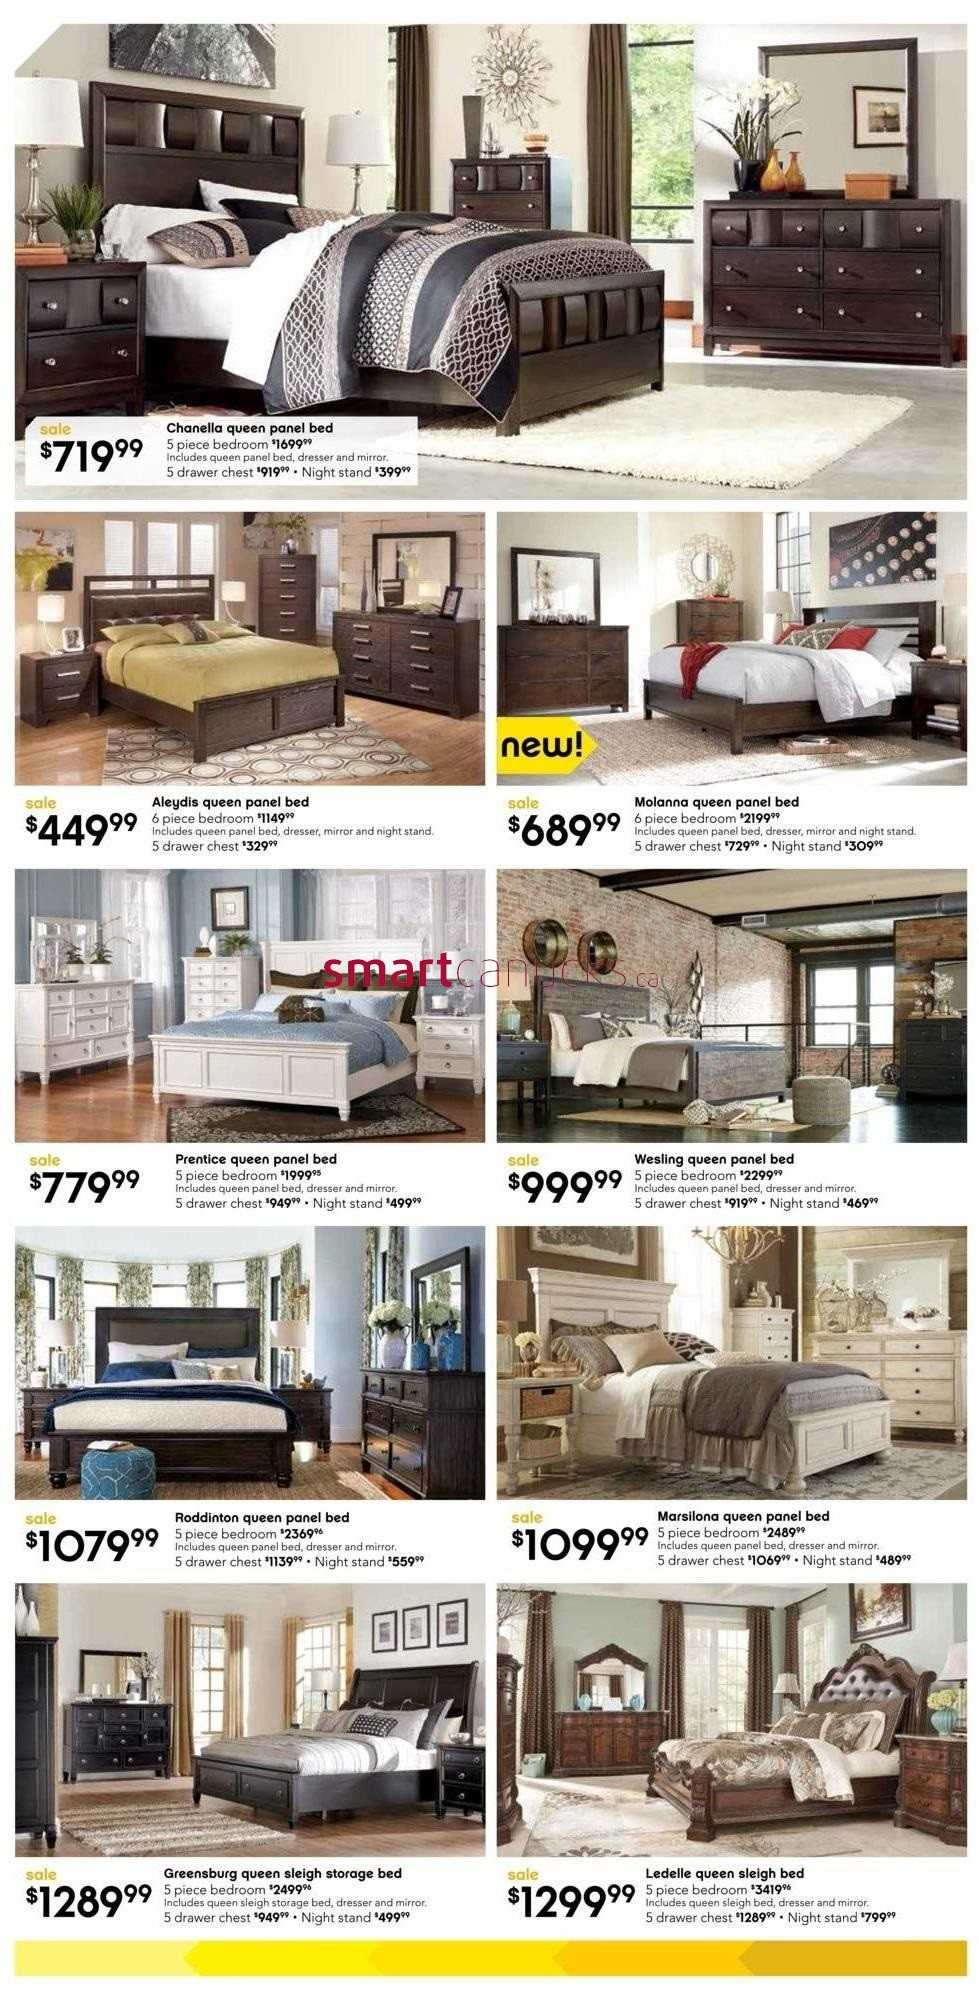 Ashley furniture homestore on flyer july 29 to august 23 for Ashley furniture homestore canada